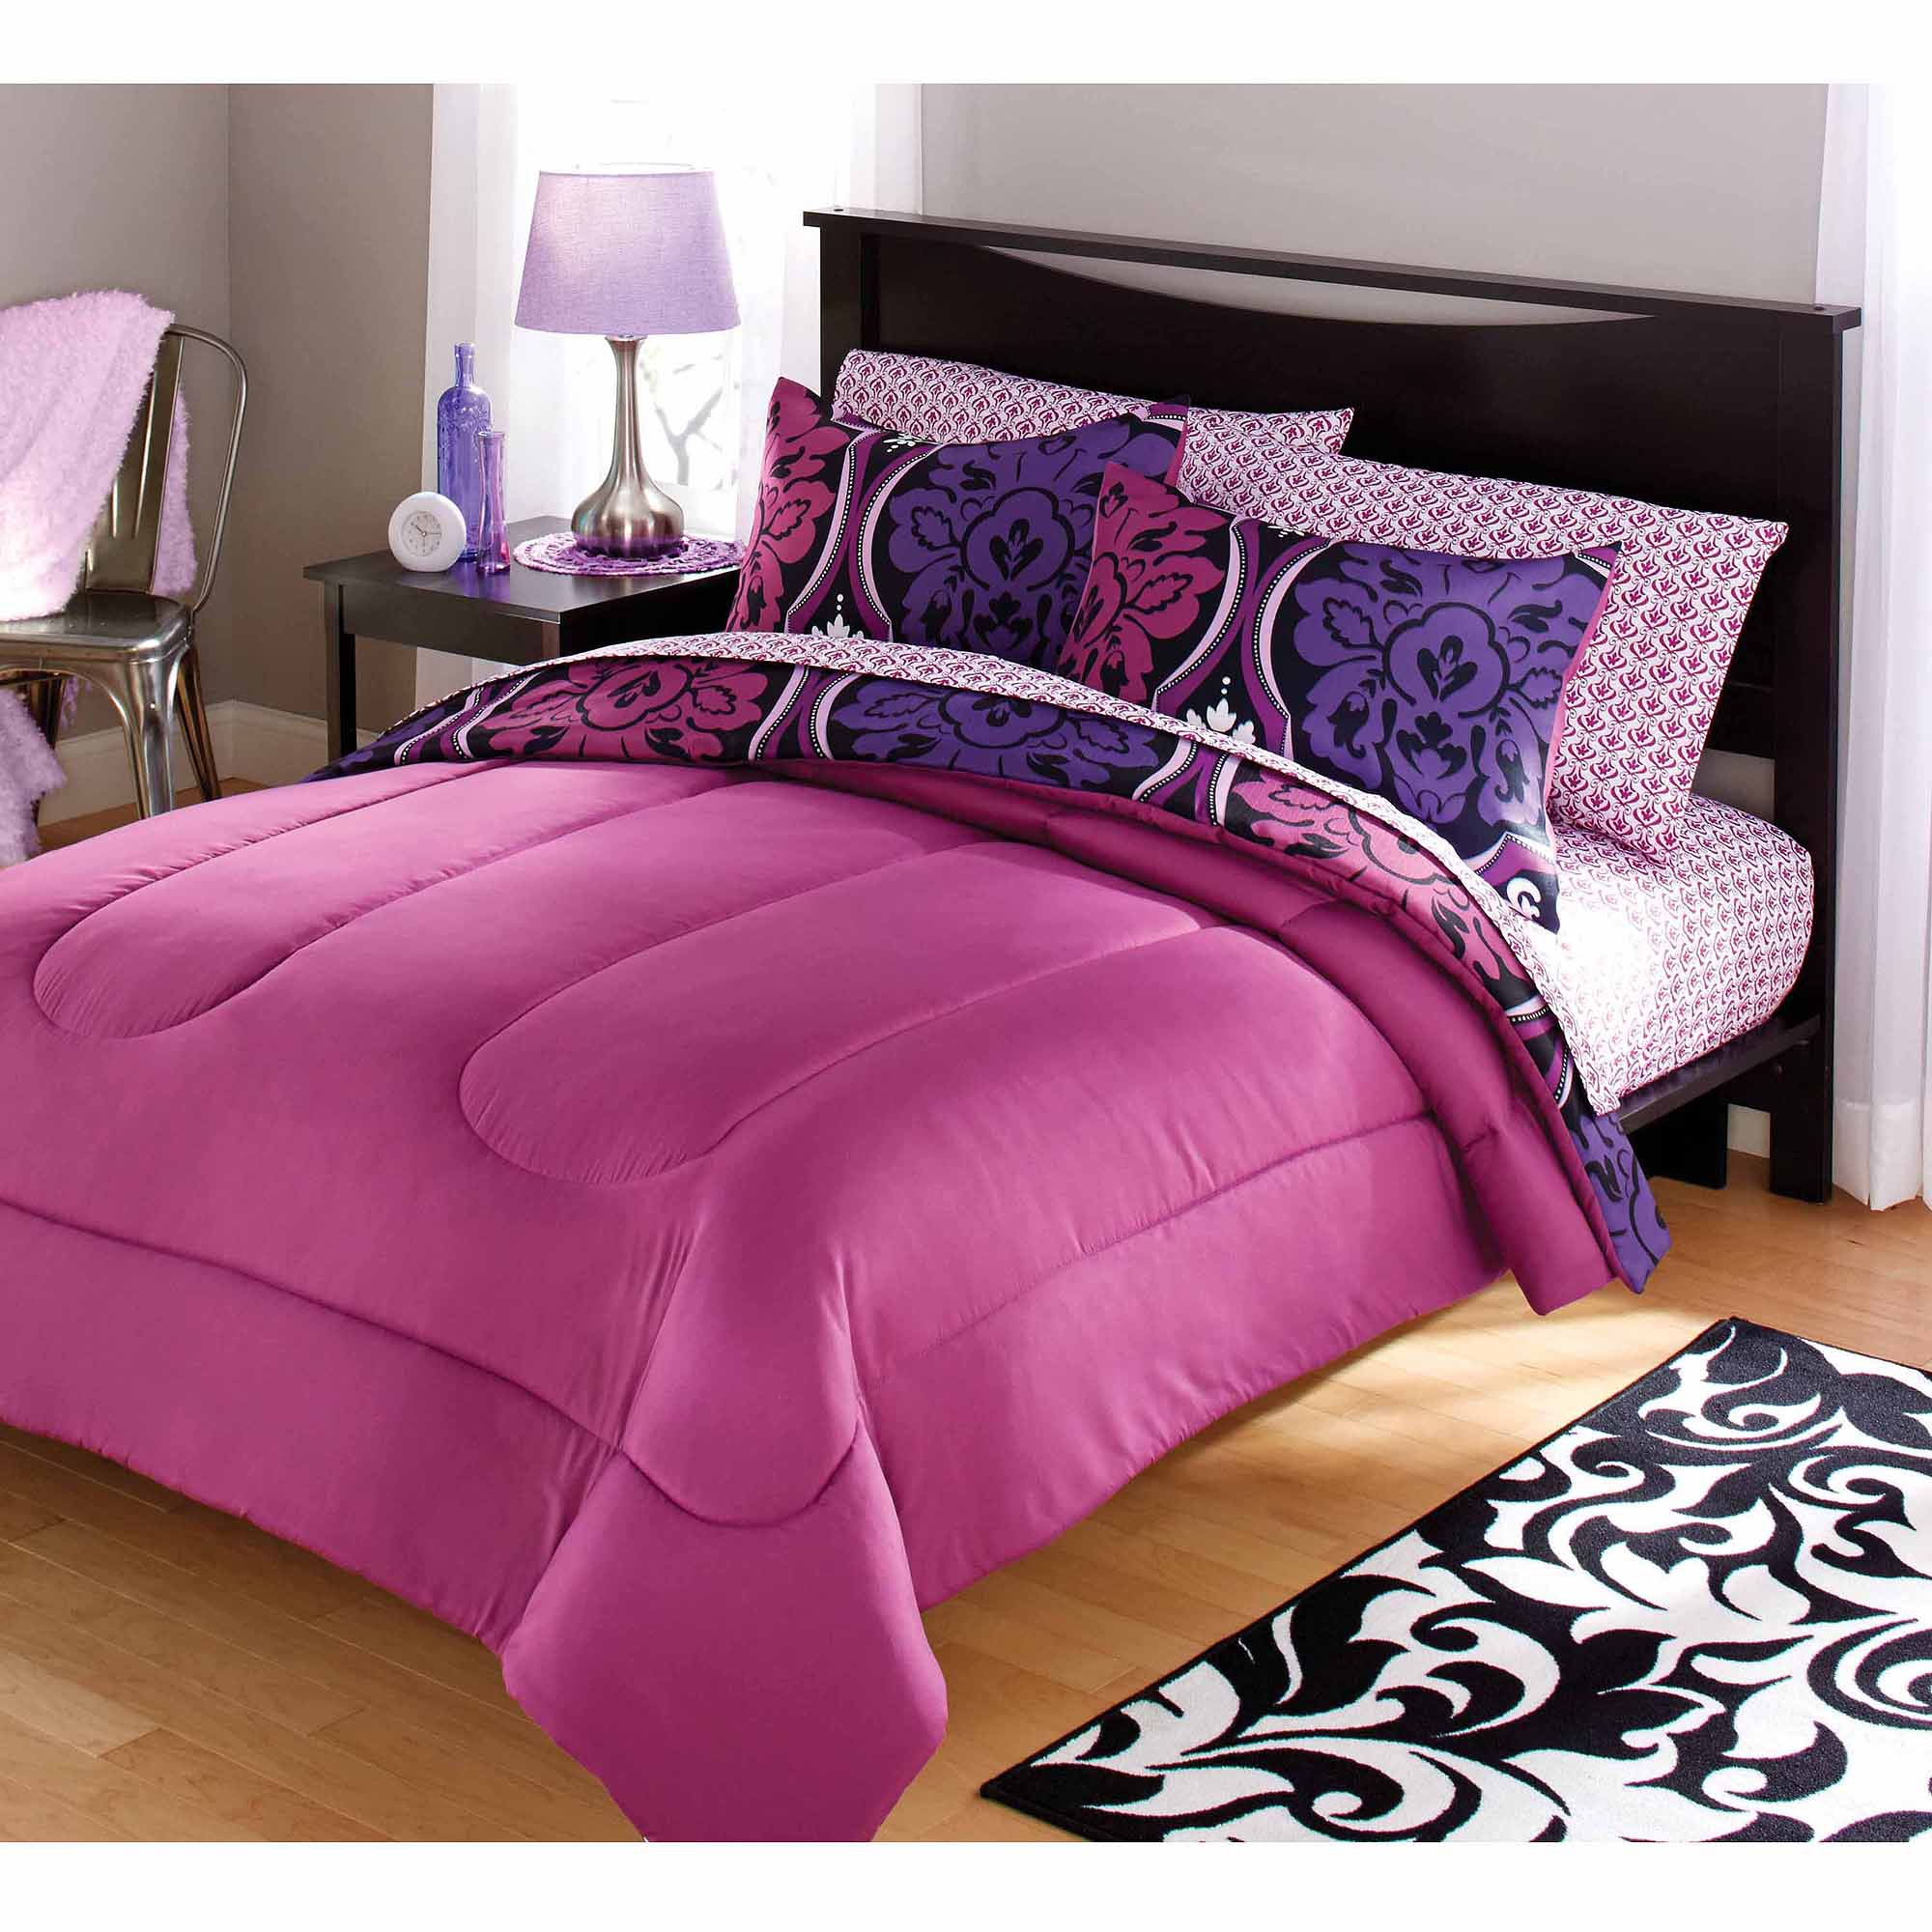 your zone dotted damask bedding comforter set, purple